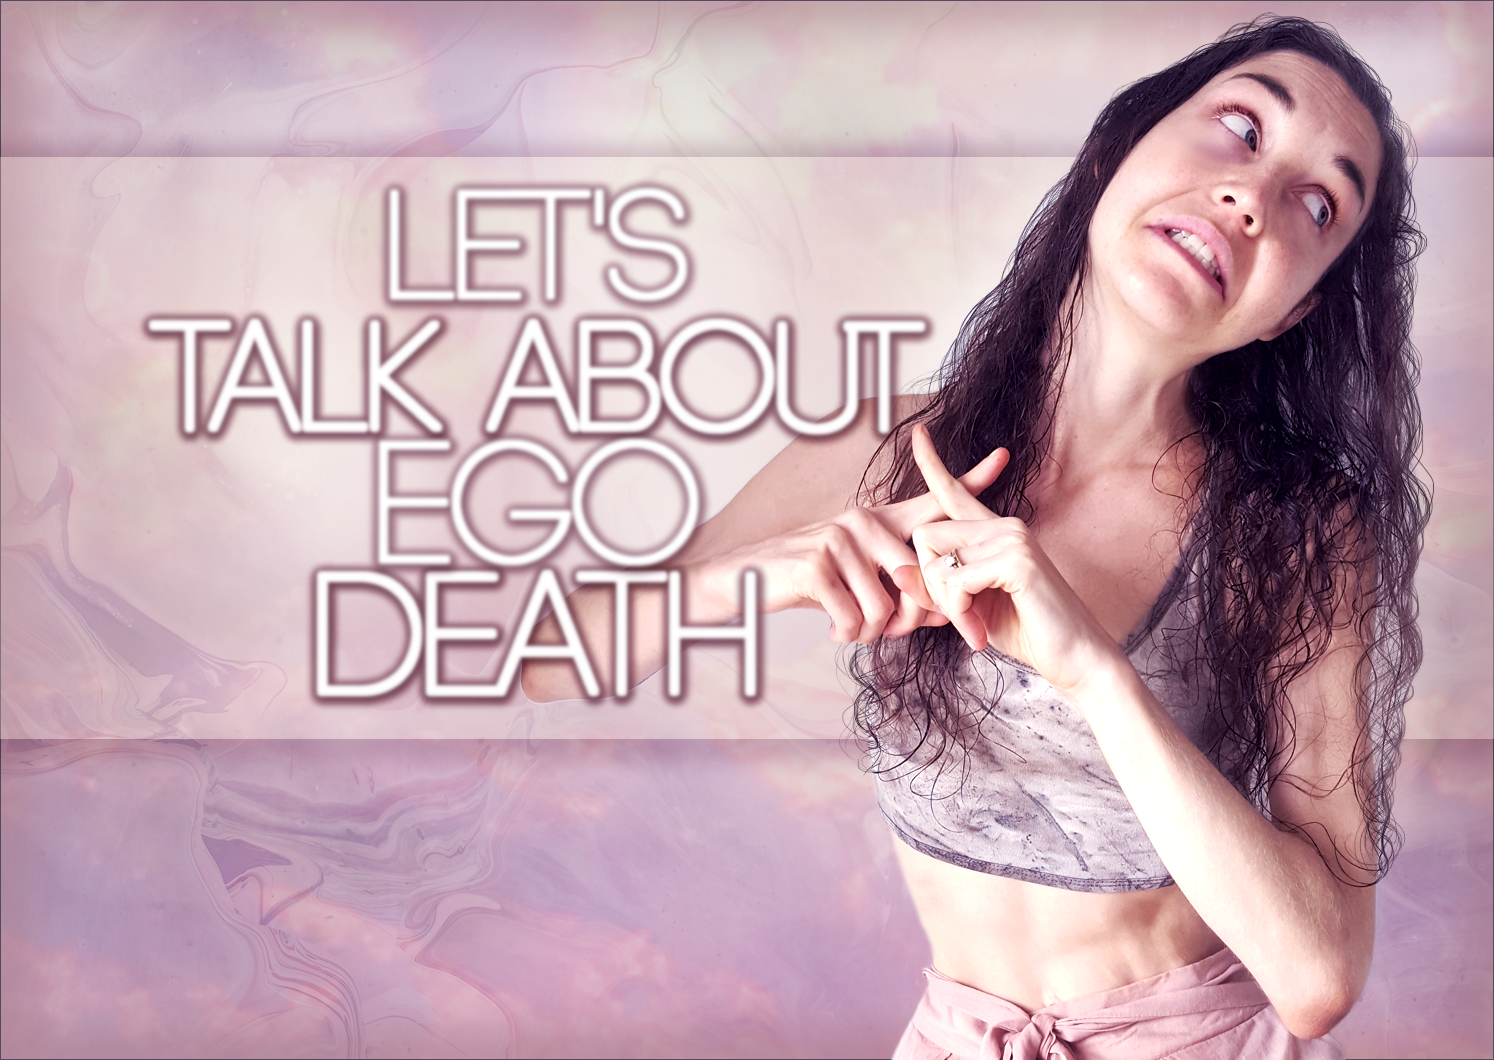 Let's Talk About Ego Death